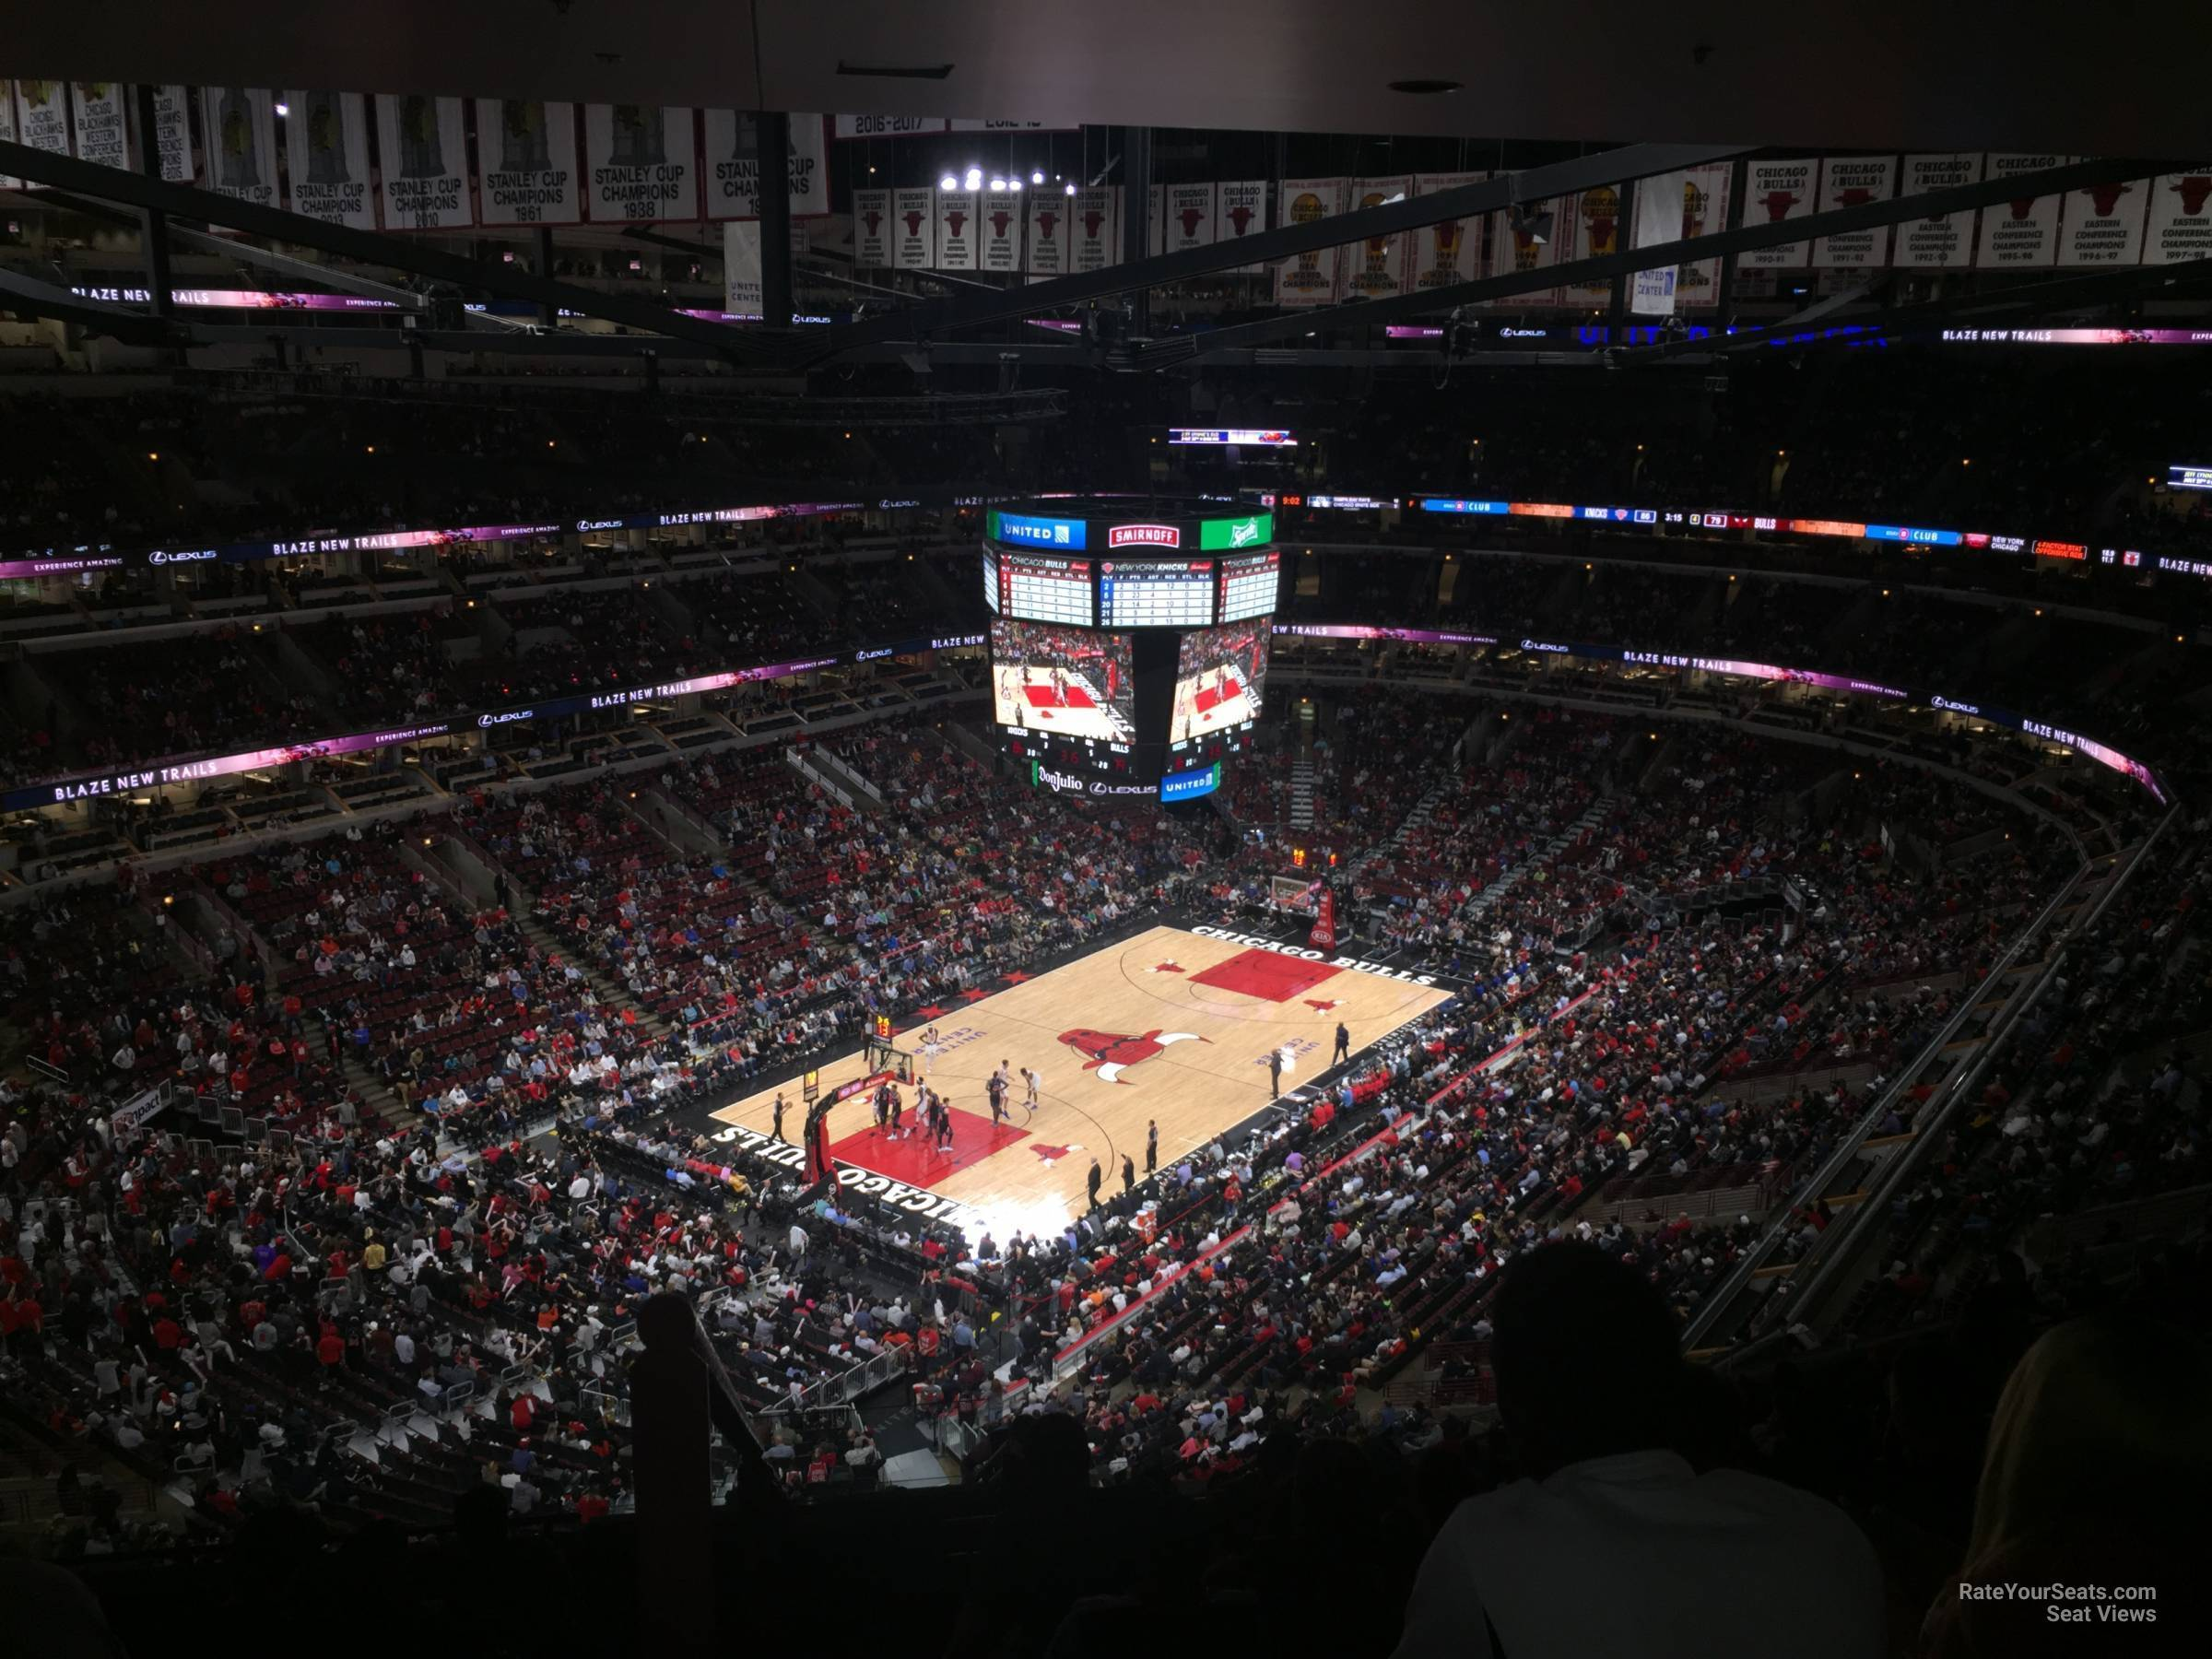 Chicago Bulls Seat View for United Center Section 305, Row 17